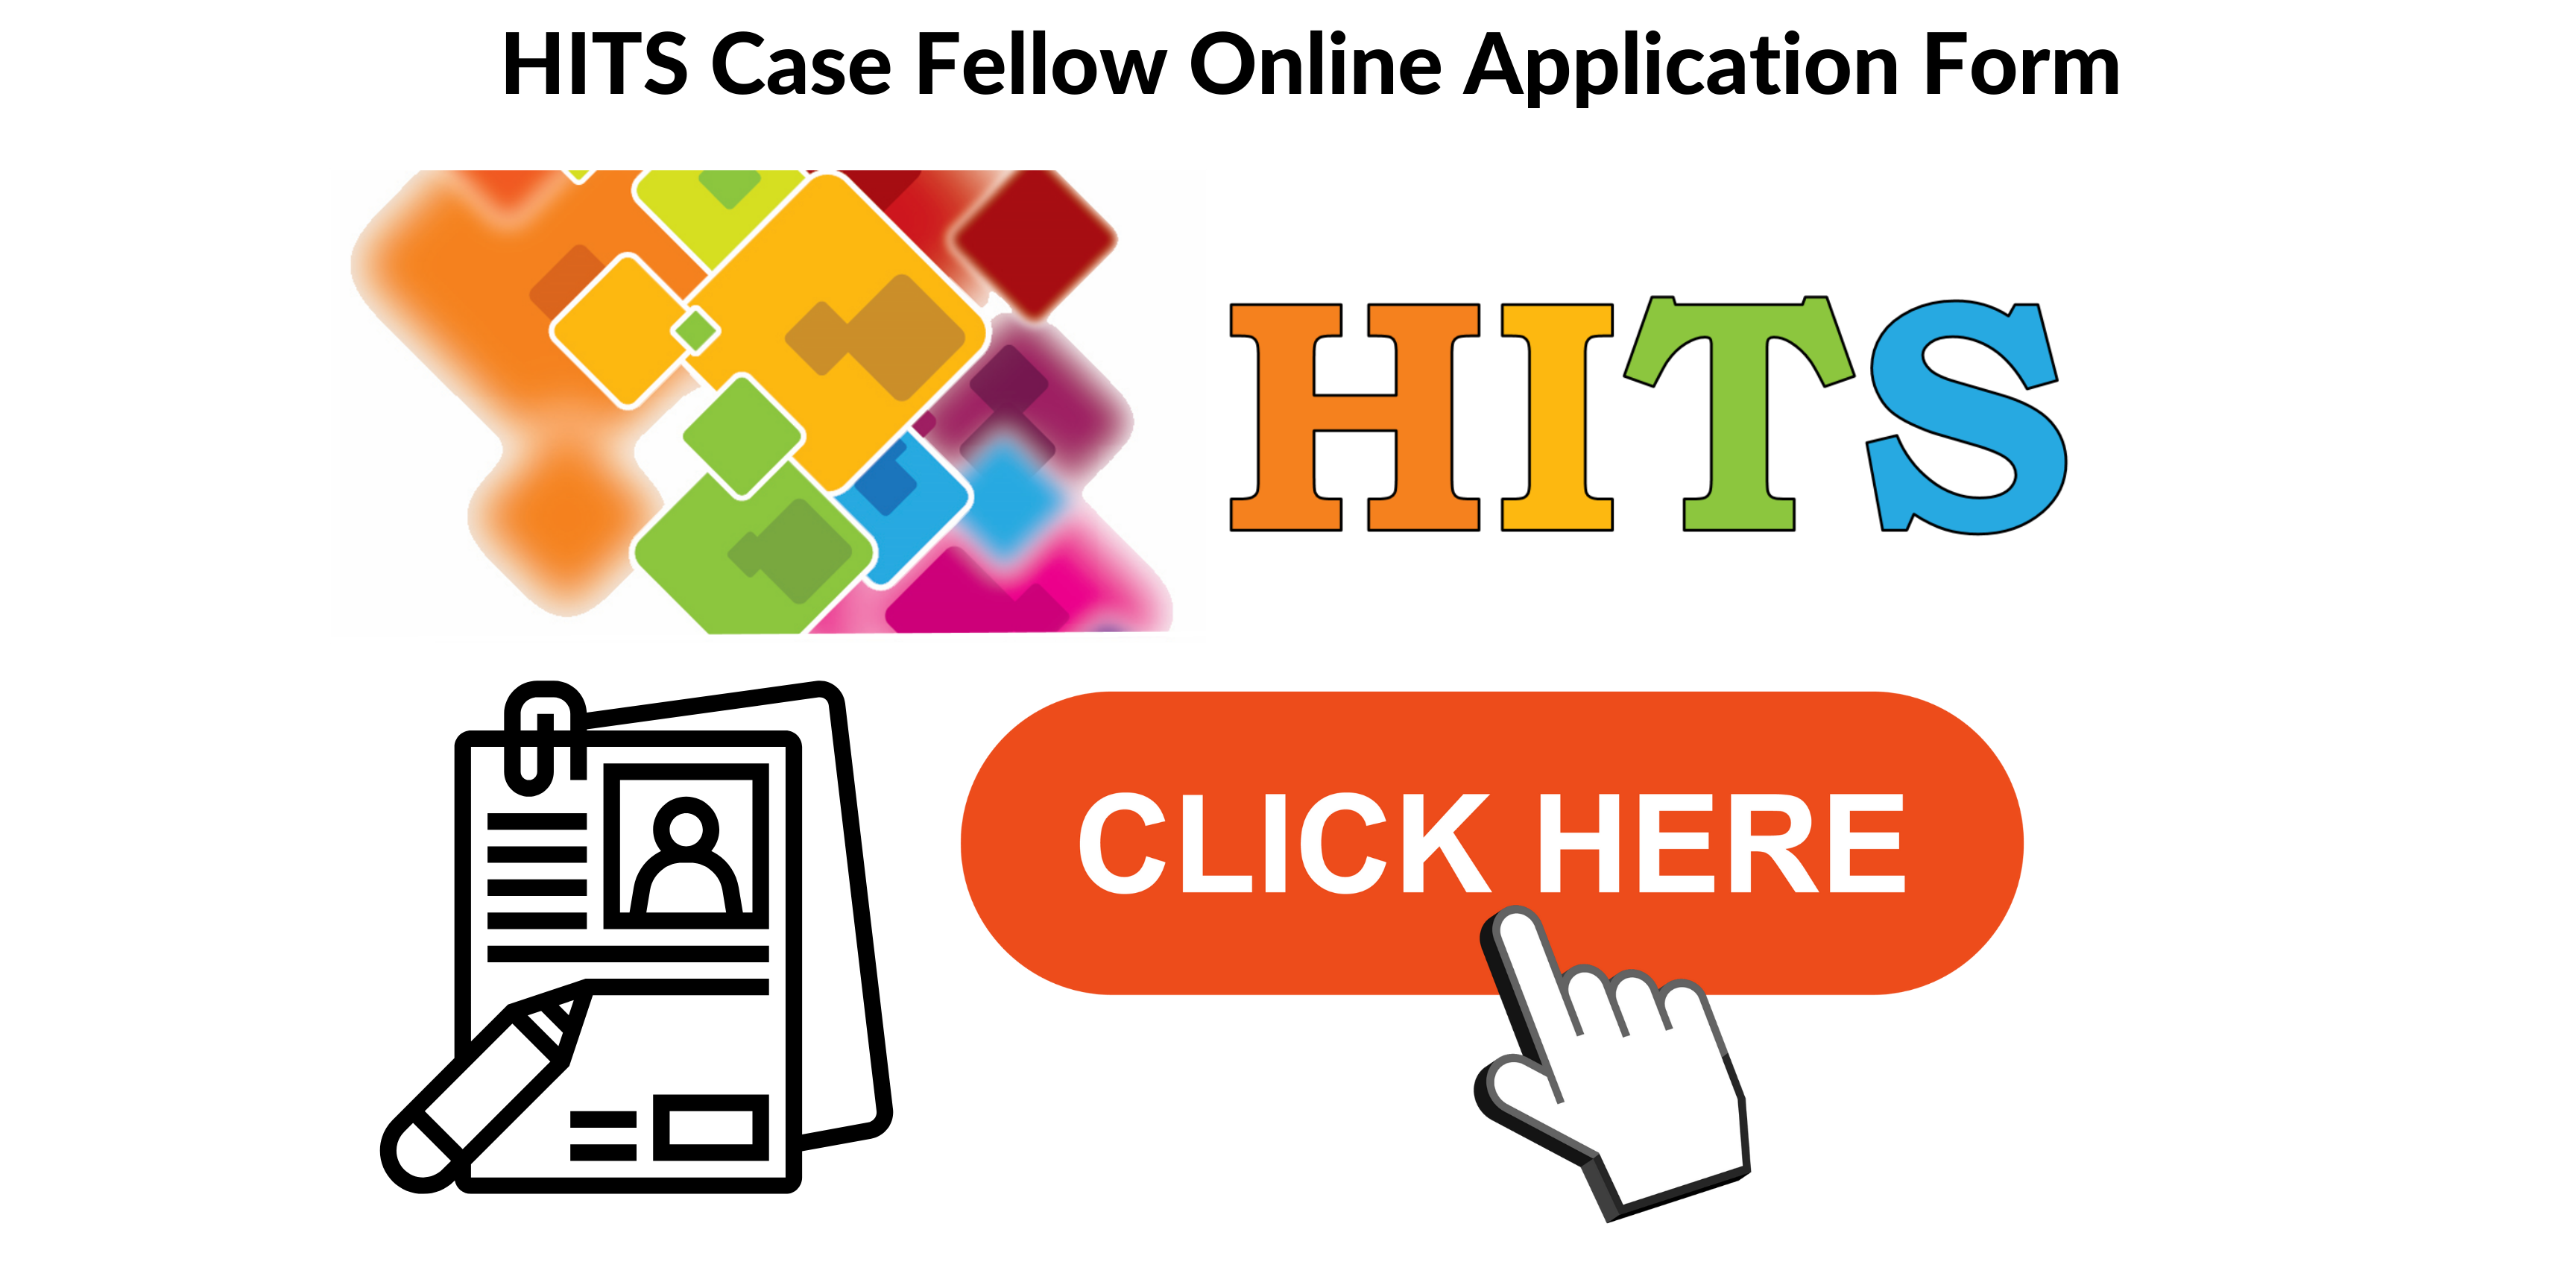 HITS Case Fellow Online Application Form